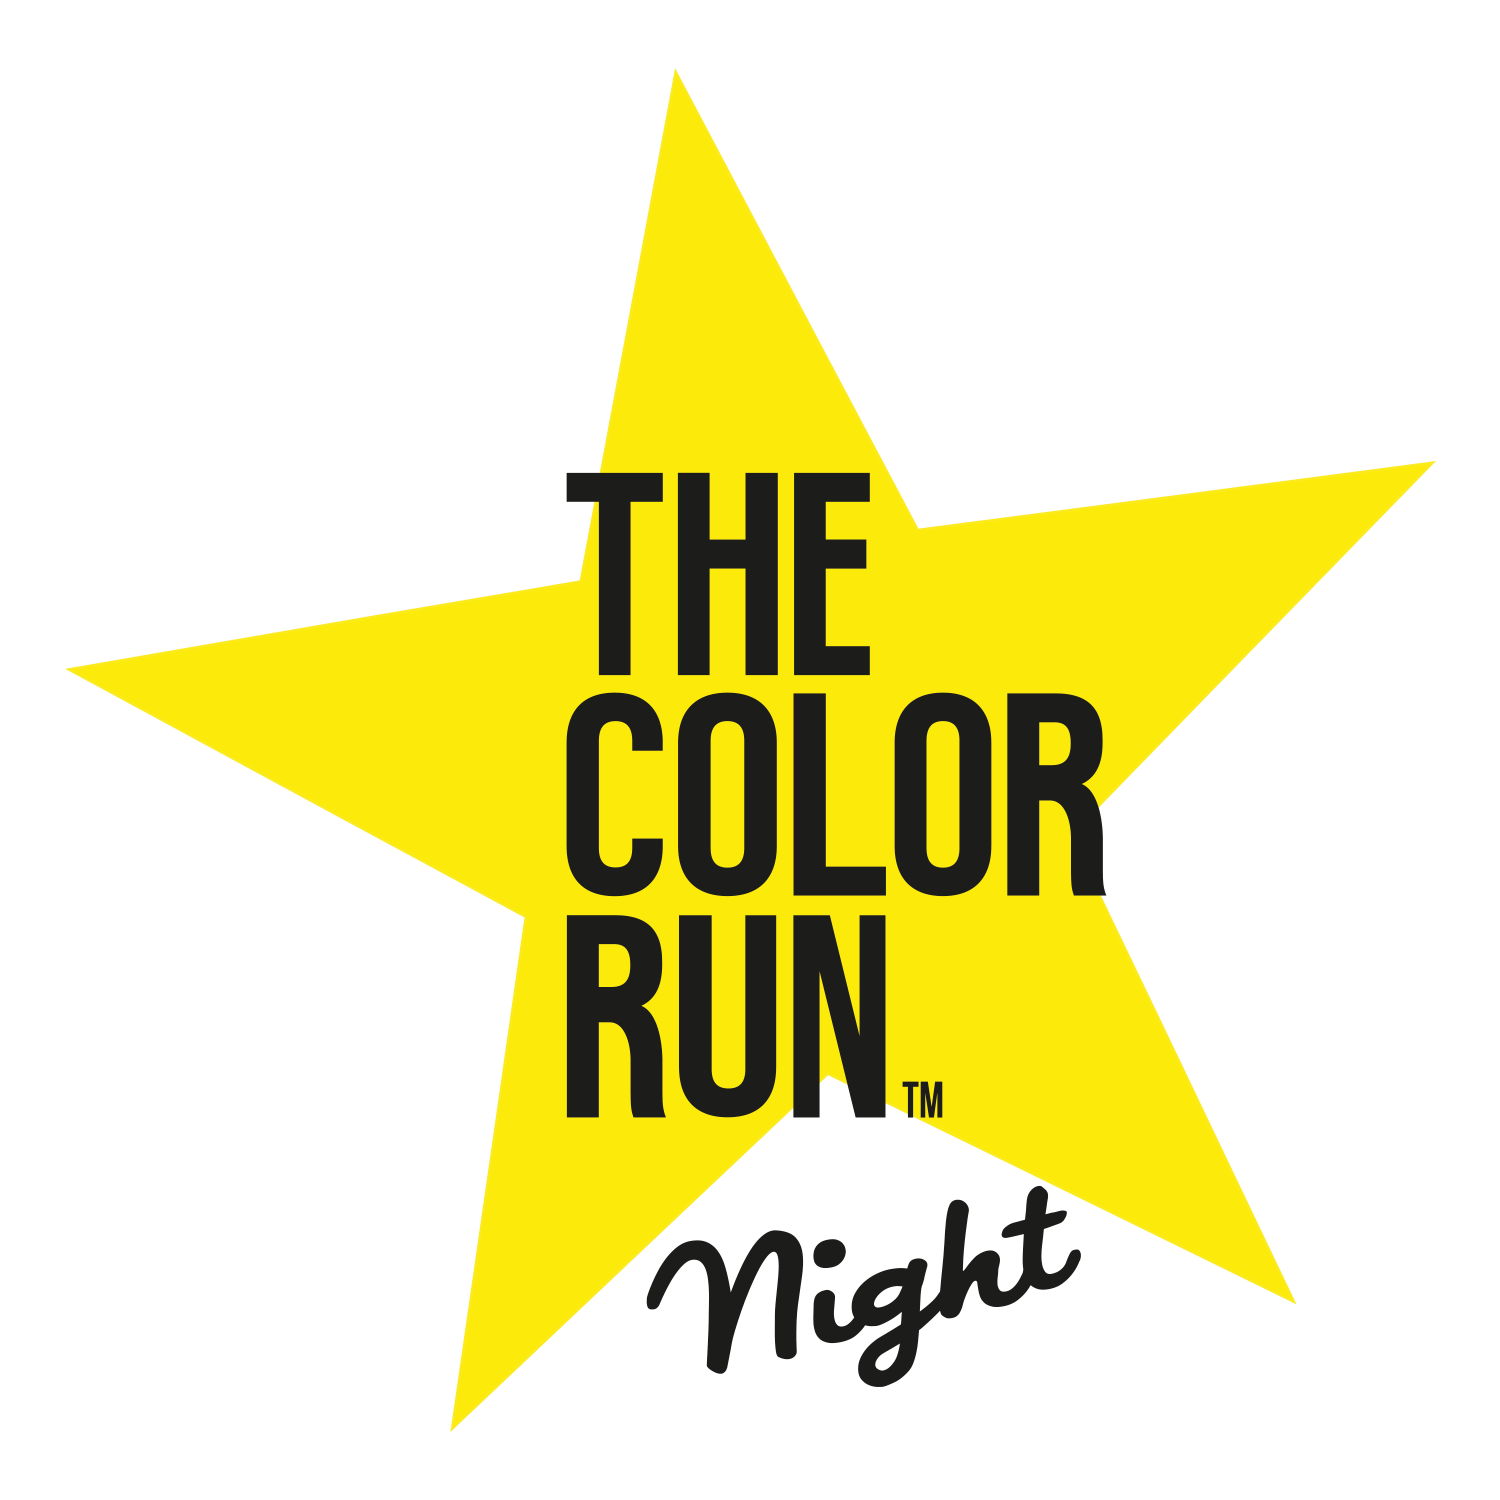 the-color-run-night.png